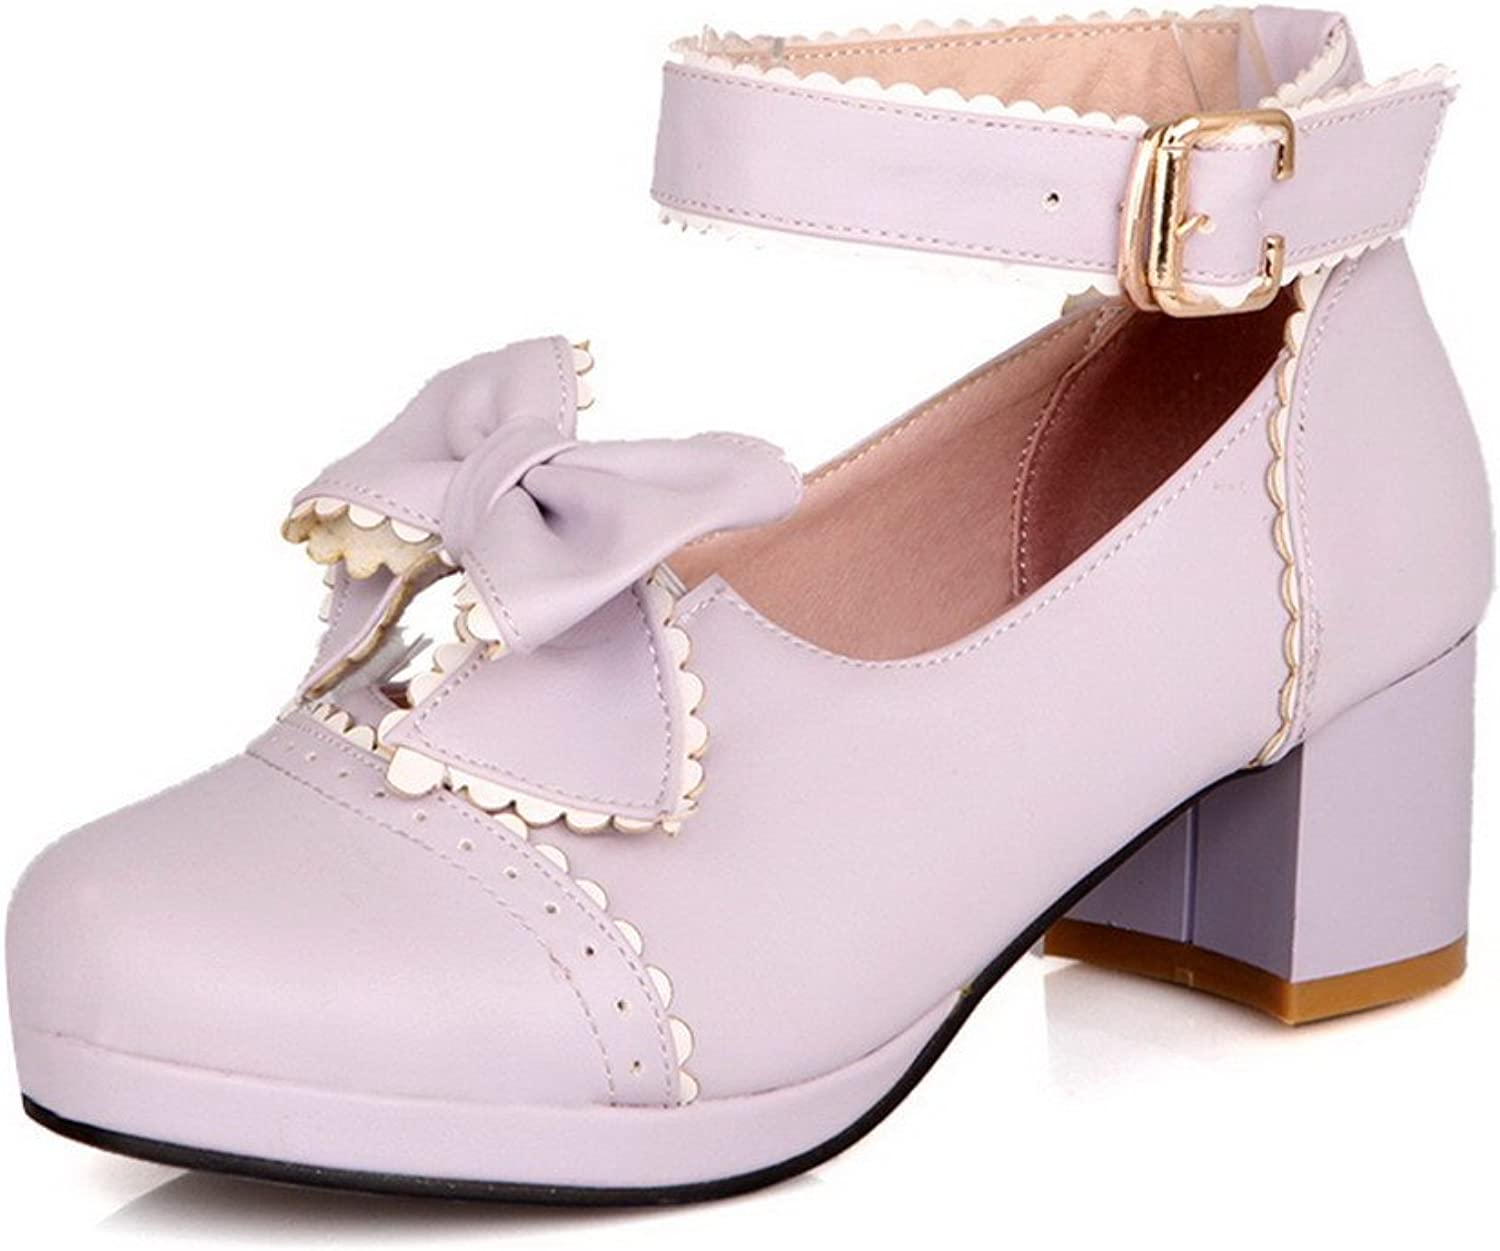 AmoonyFashion Women's Round-Toe Closed-Toe Kitten-Heels Pumps-shoes with Bows and Spire Lamella